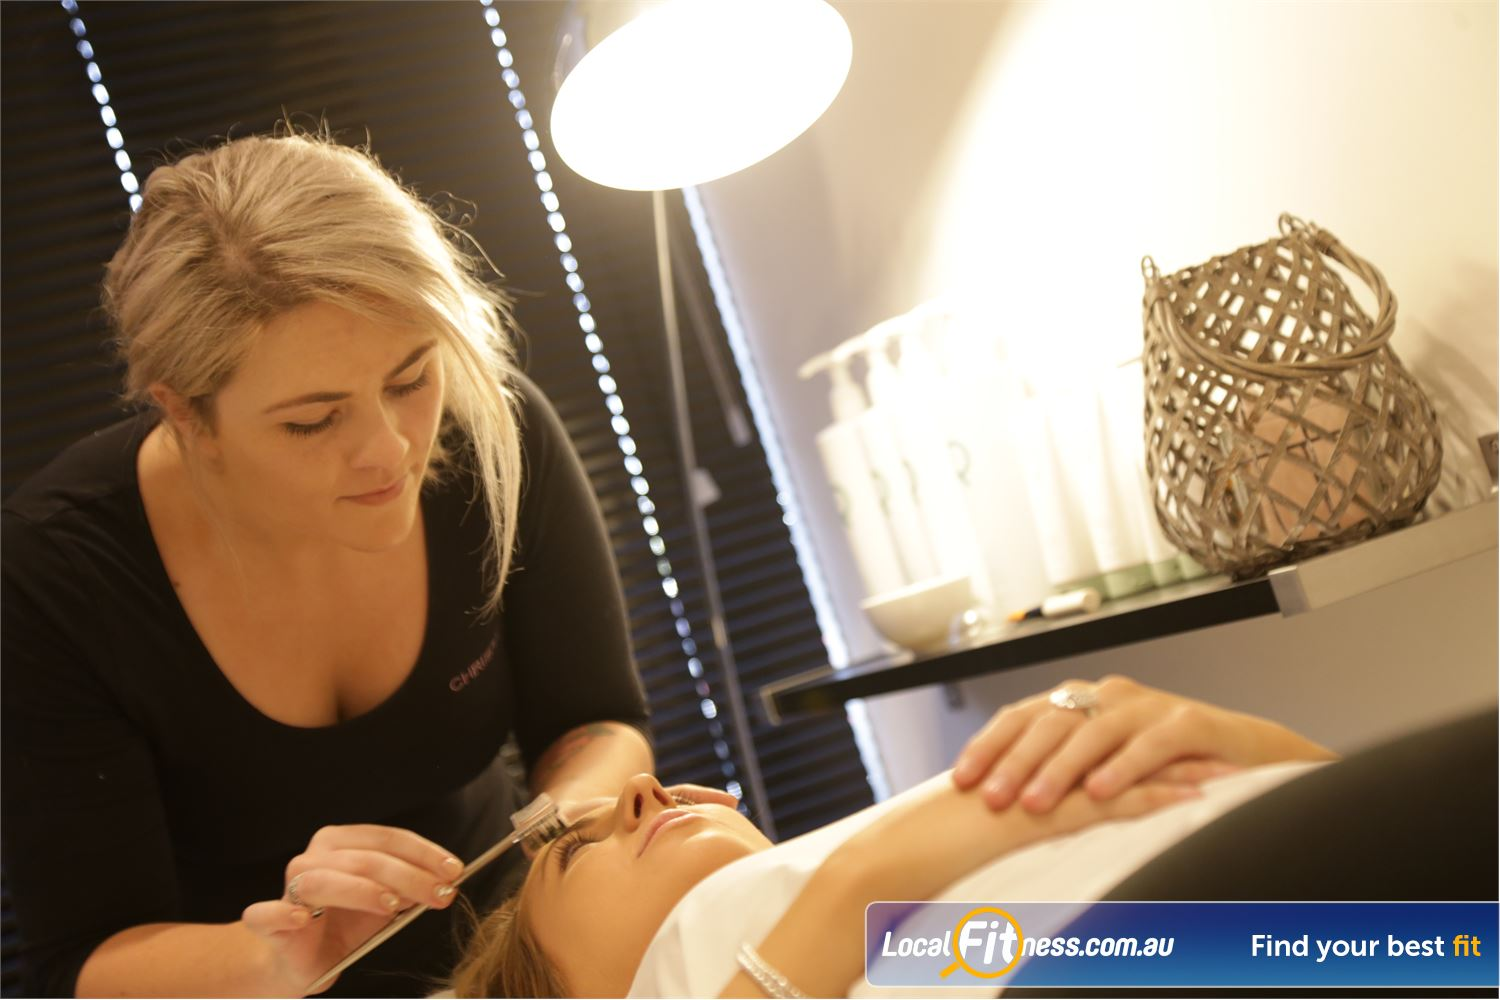 Fernwood Fitness Shepparton On-site beautician to compliment the new you.